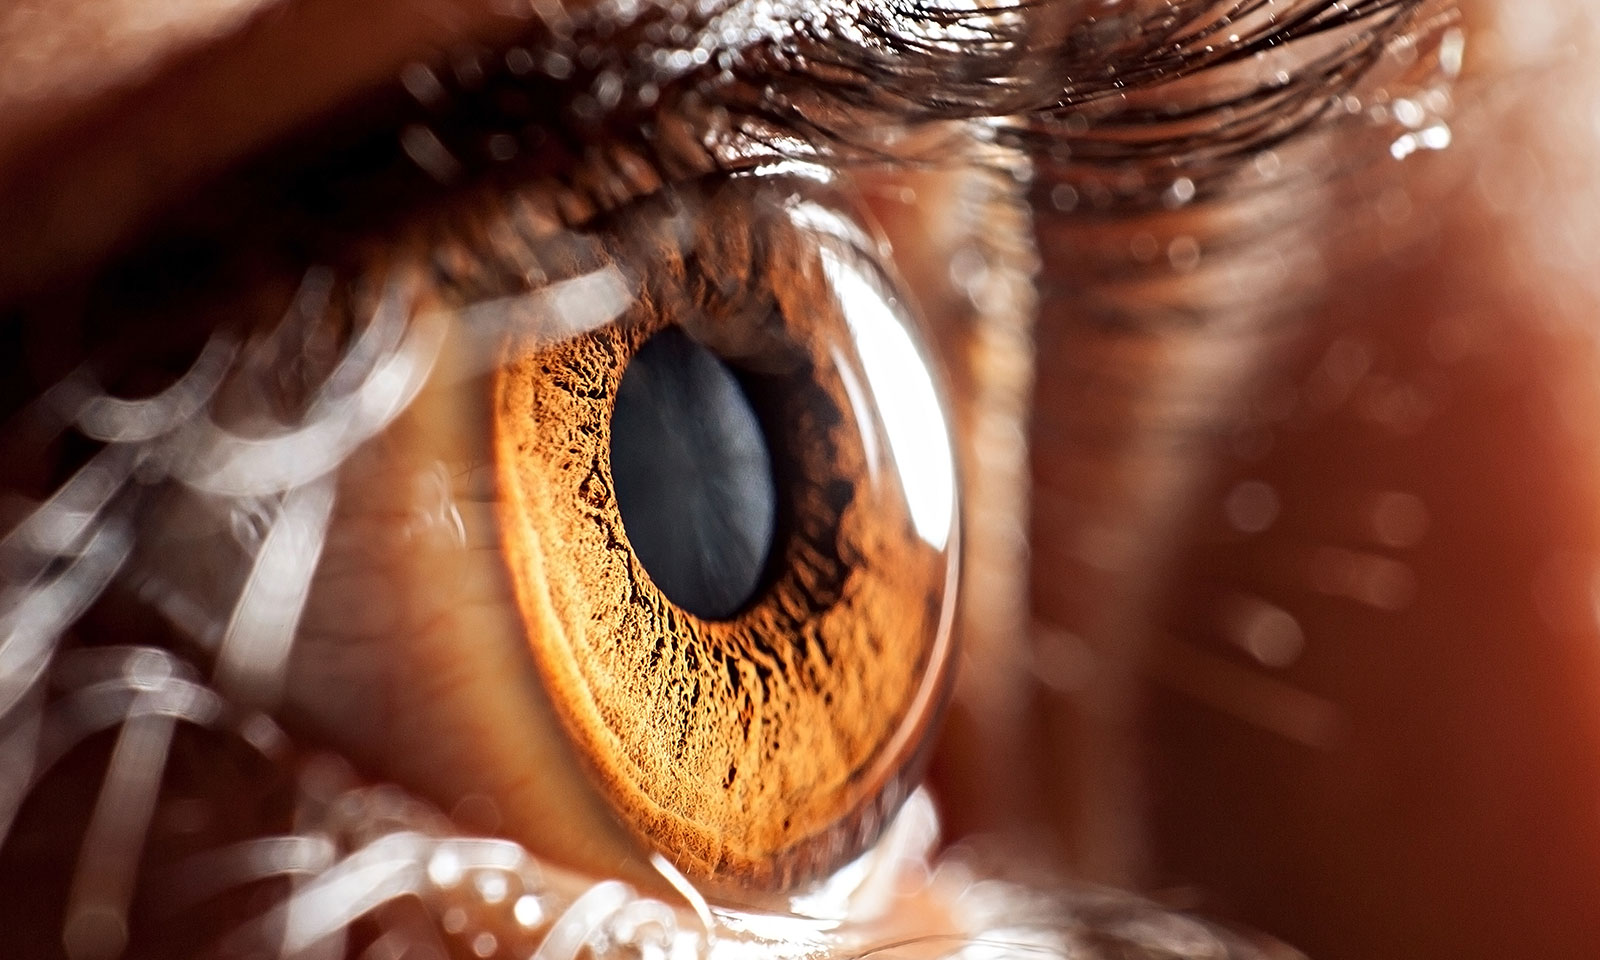 What Can I Take To Help With Dry Eyes?